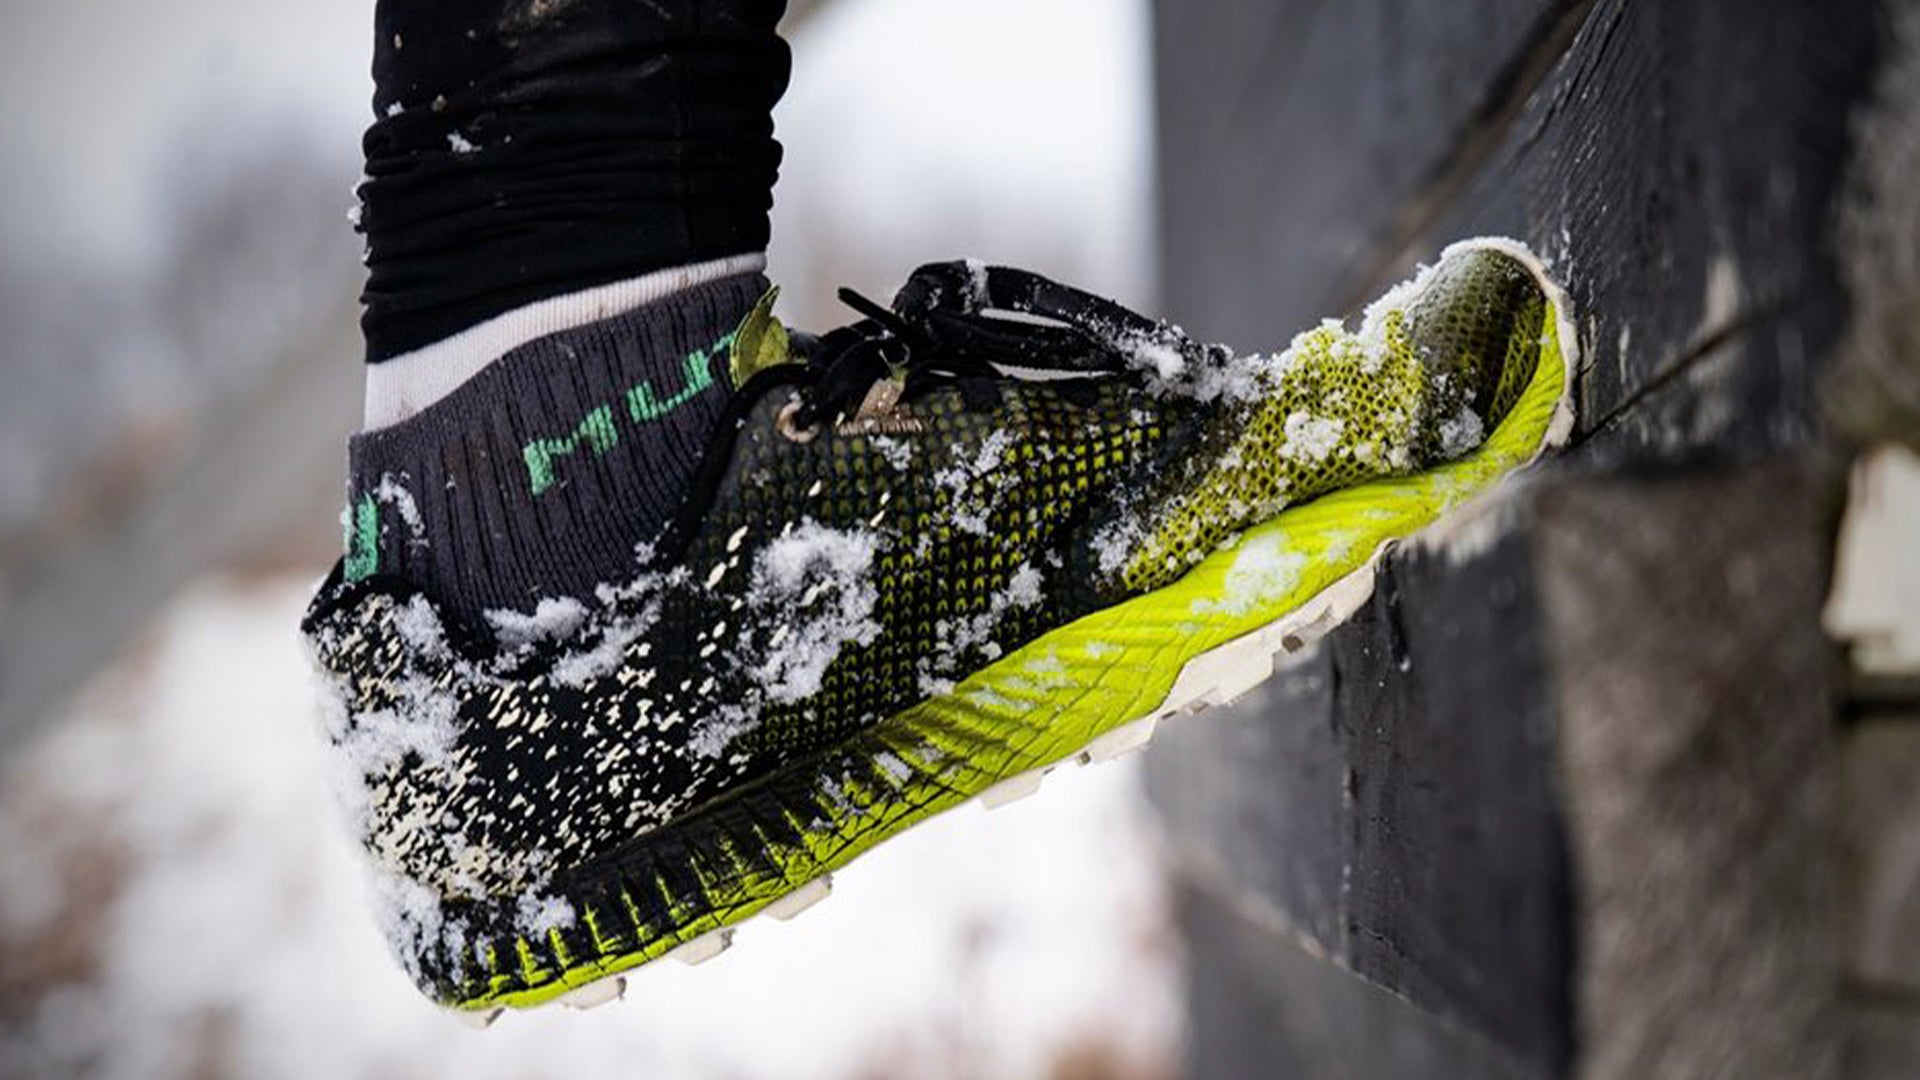 Choose comfortable shoes with great grip for your Spartan Race.